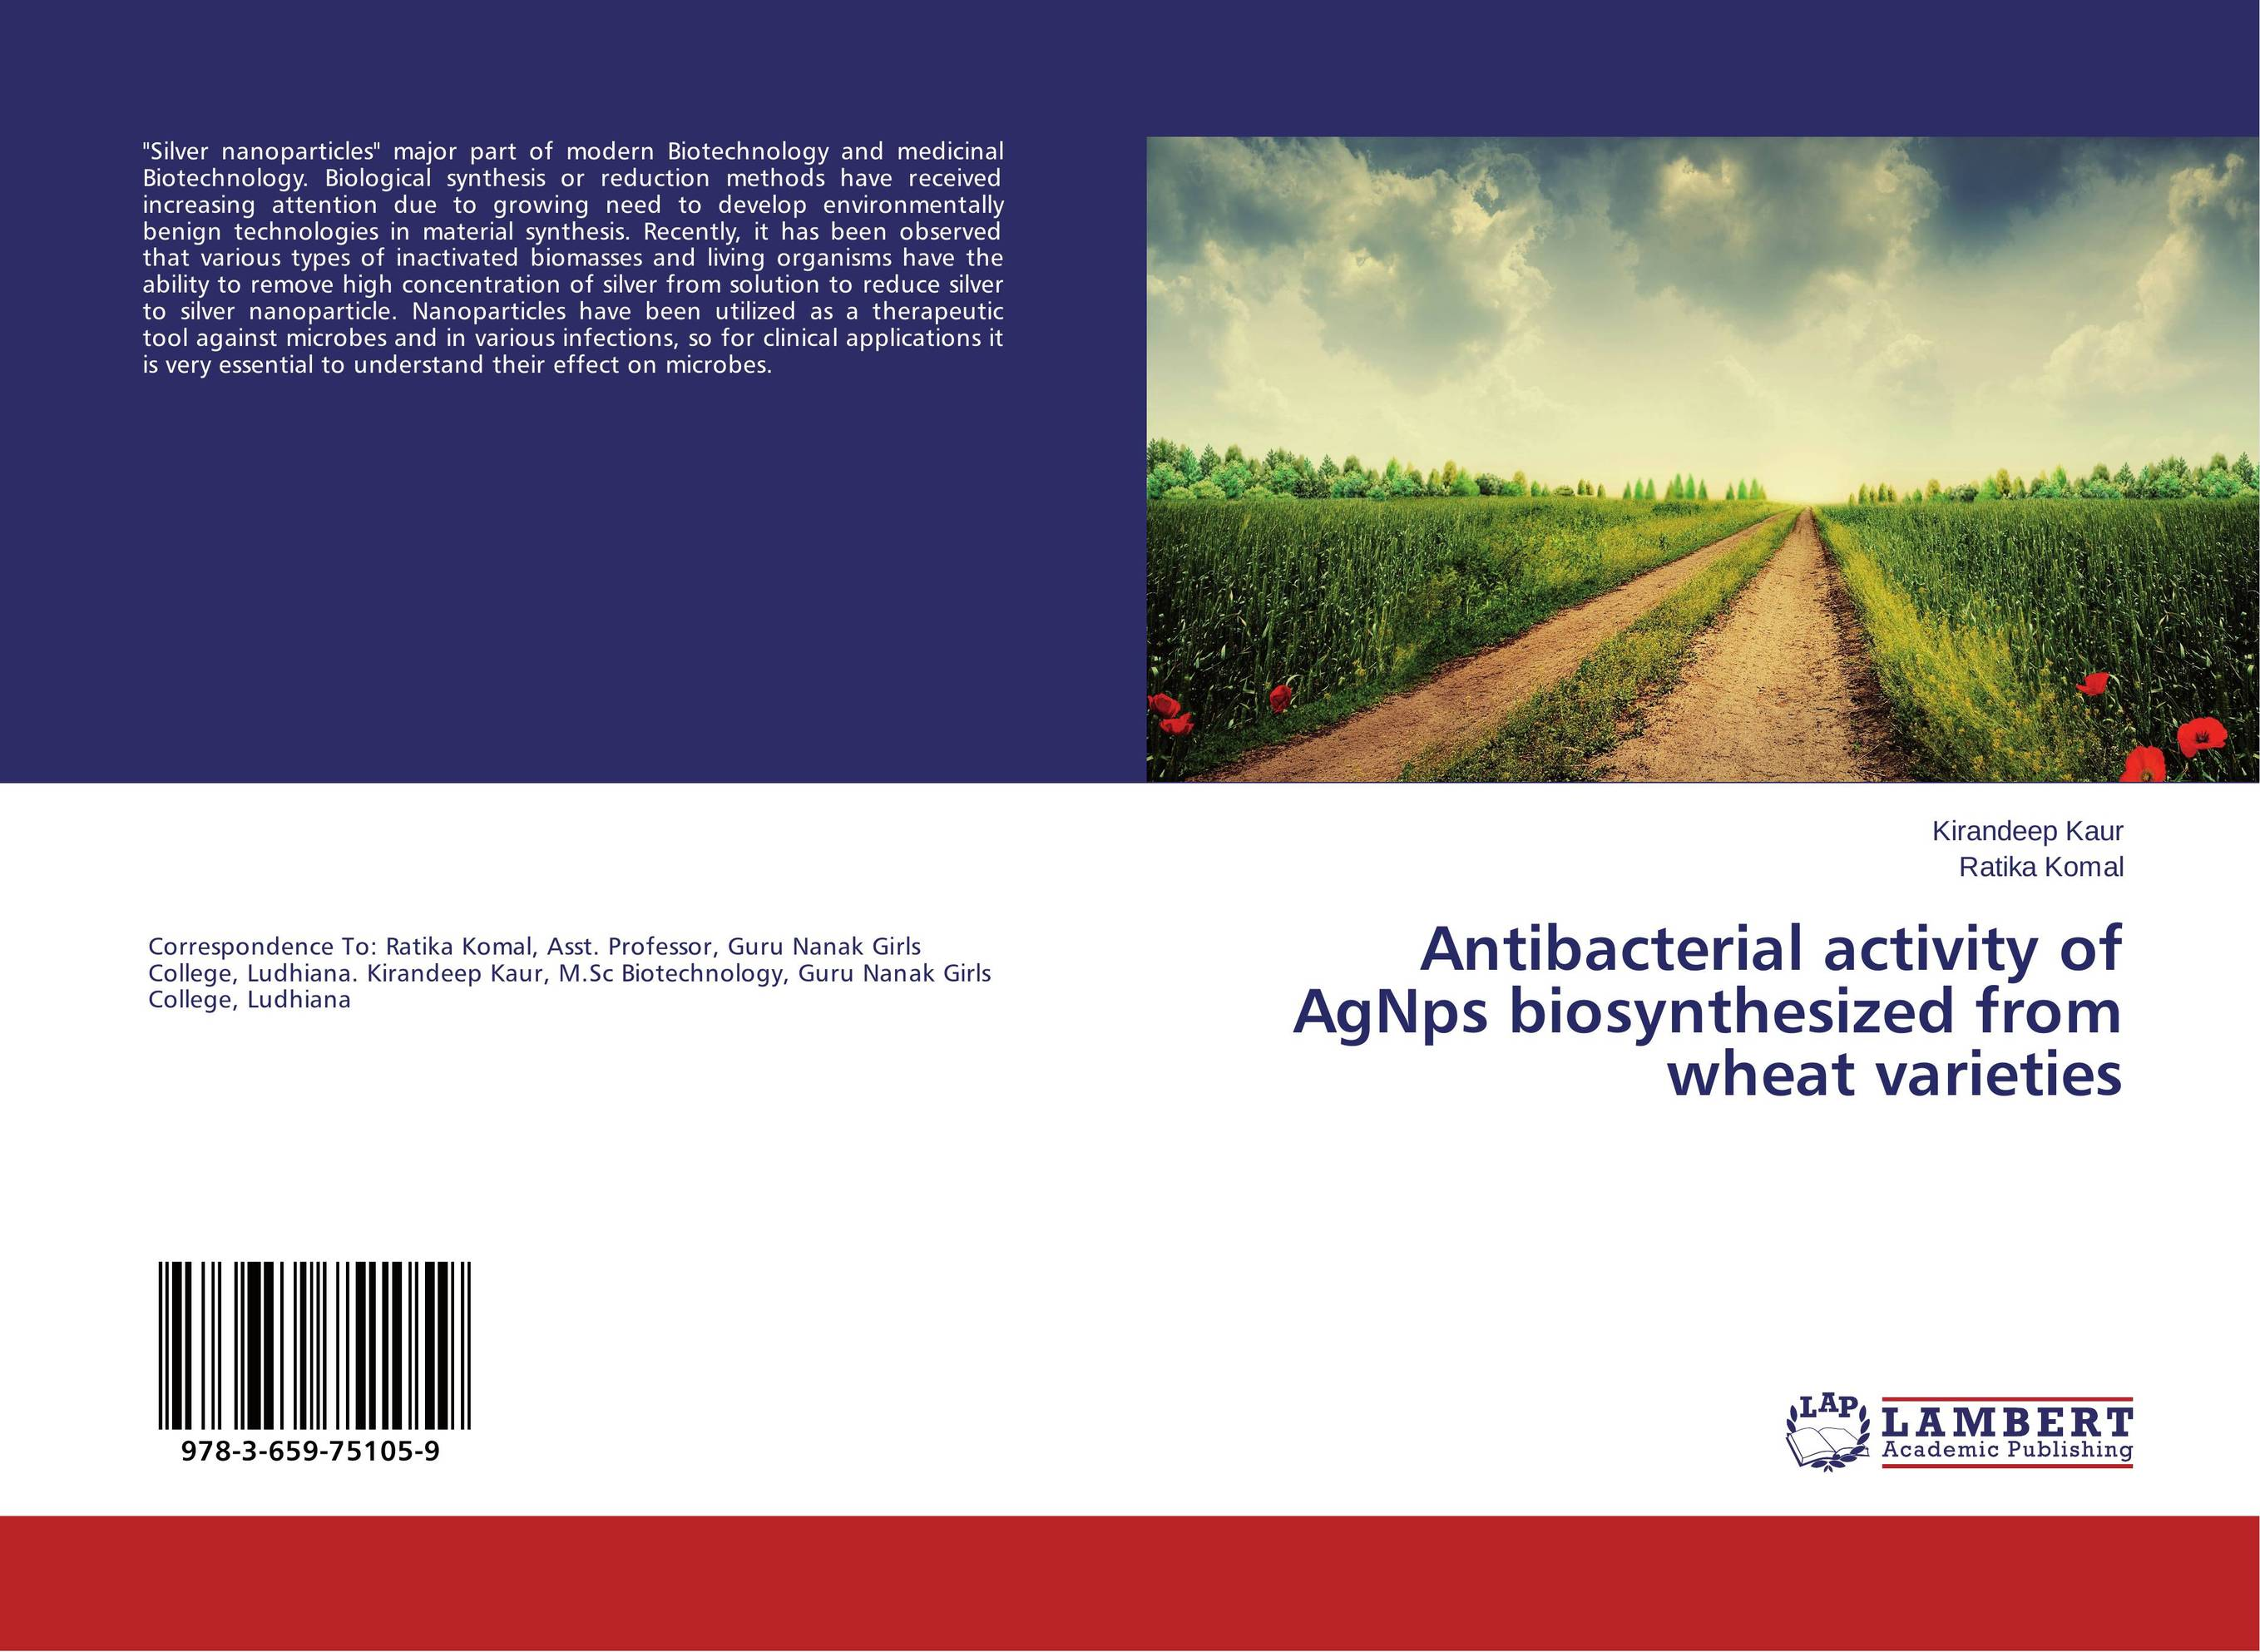 Antibacterial activity of AgNps biosynthesized from wheat varieties green synthesis of magnetite and silver nanoparticles